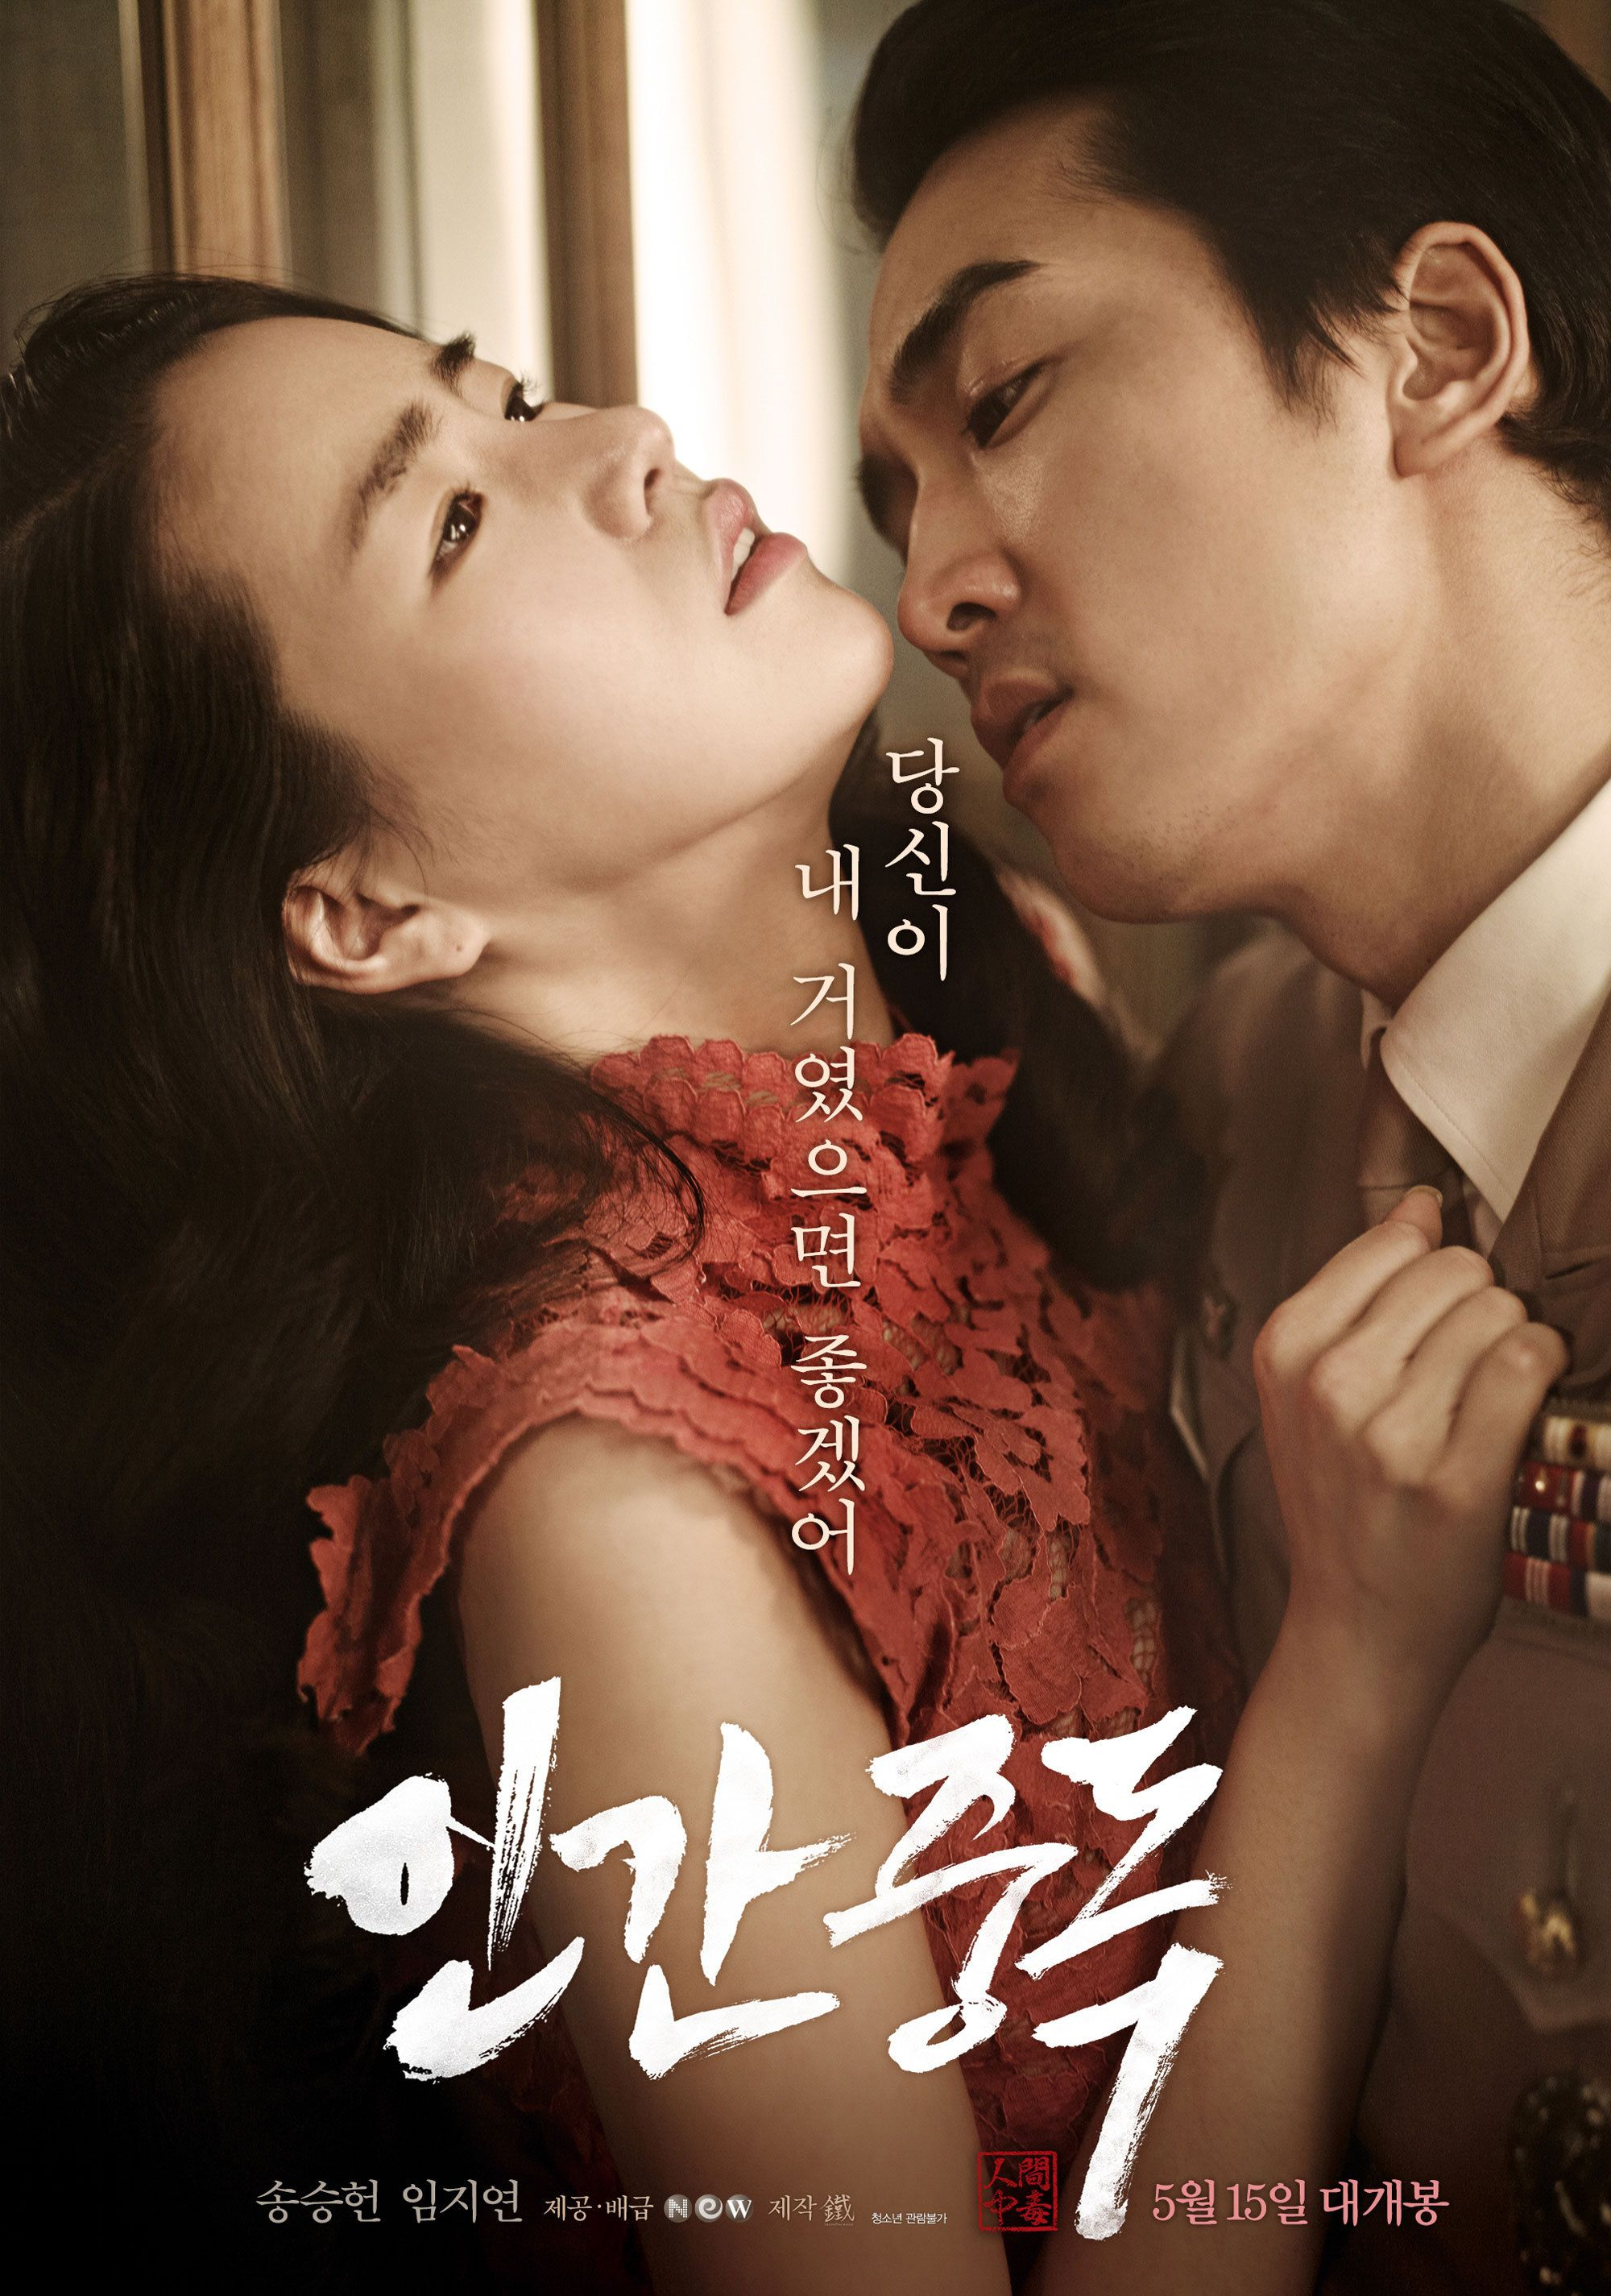 Im Ji Yeon Nude Stunning obsessed a korean erotic thriller starring: song seung-heon, lim